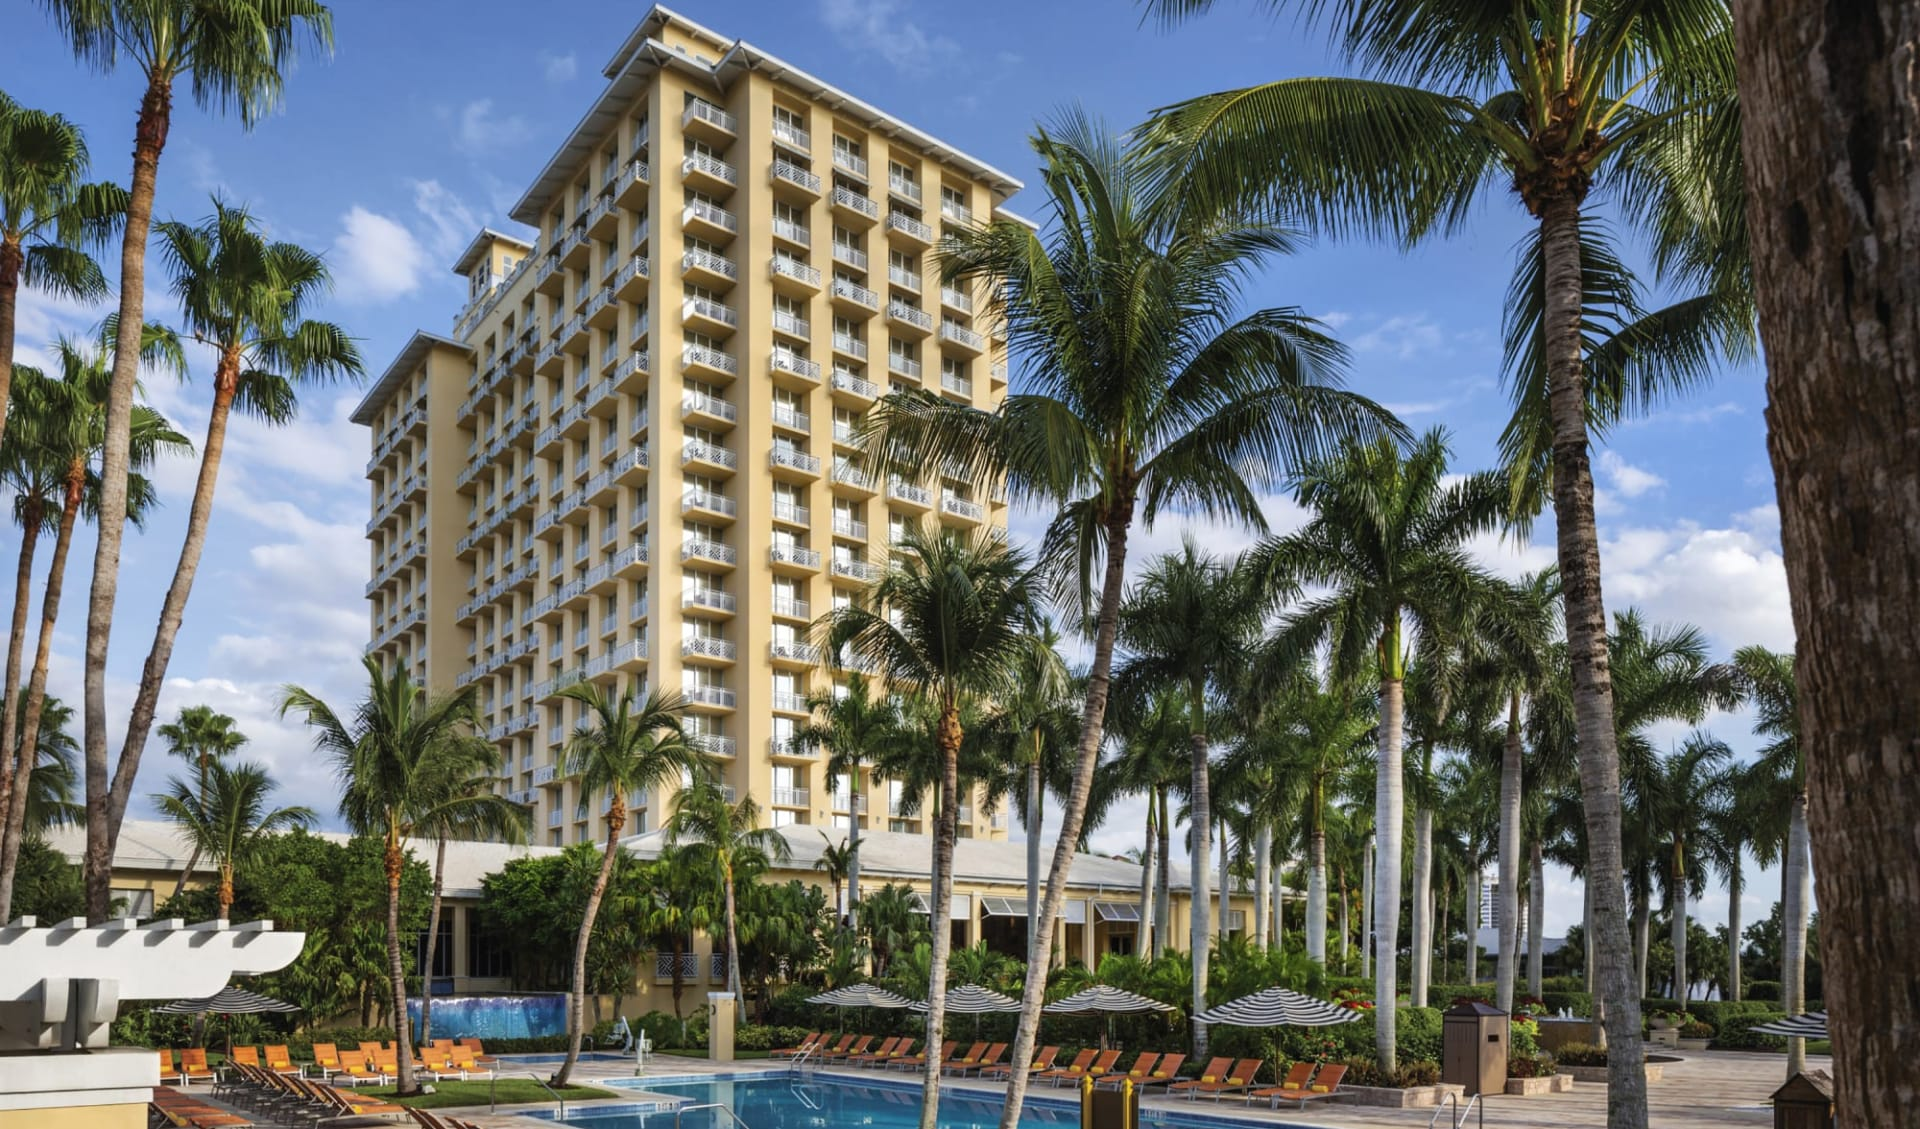 Hyatt Regency Coconut Point Resort & Spa in Bonita Springs: Aussenansicht